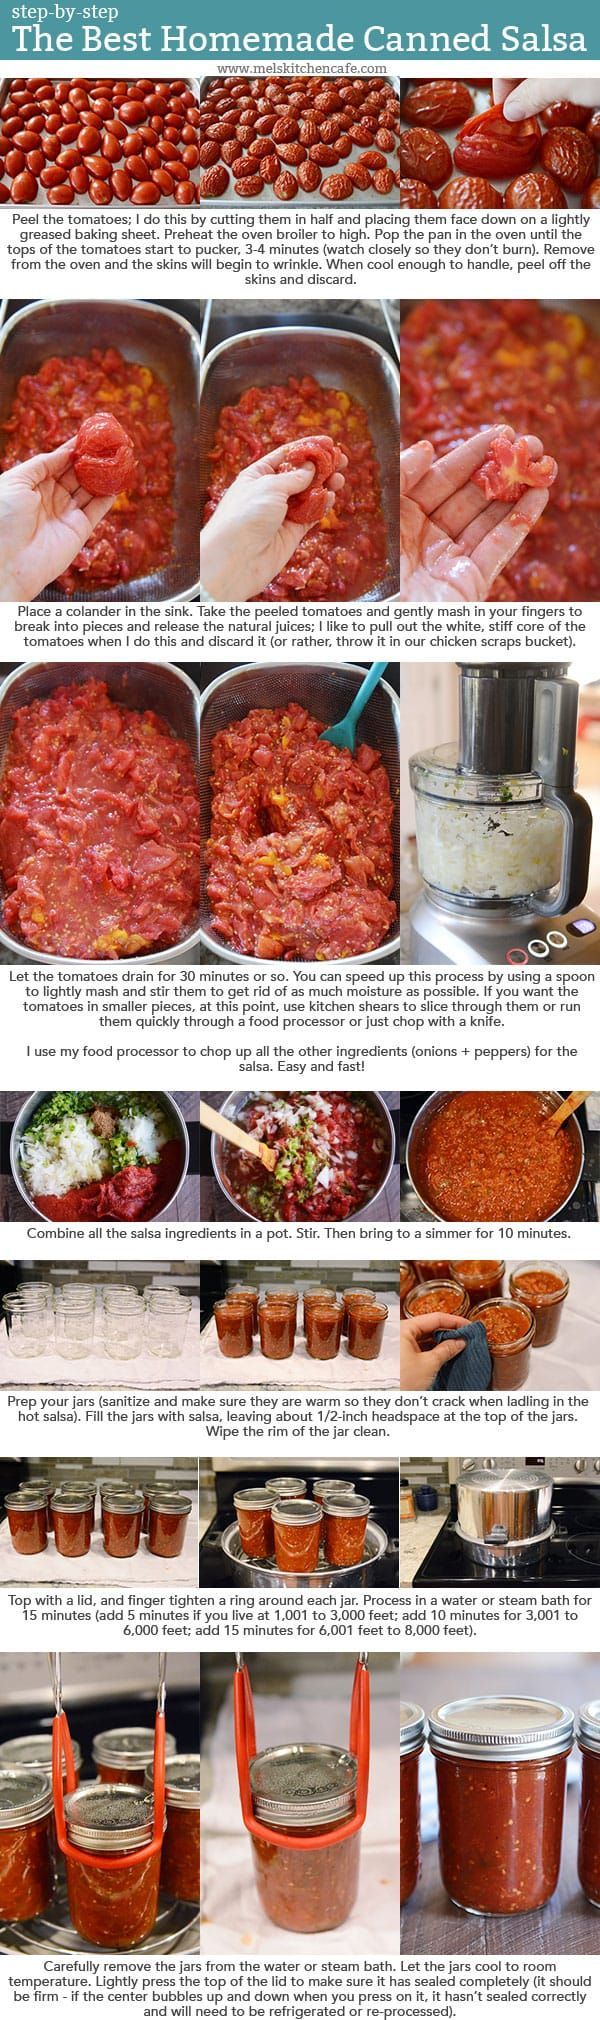 Kaylee's salsa recipe she used: The Best Homemade Salsa (Her changes: blanched the tomatoes, used on the vine instead of Roma, and she left out the cilantro)